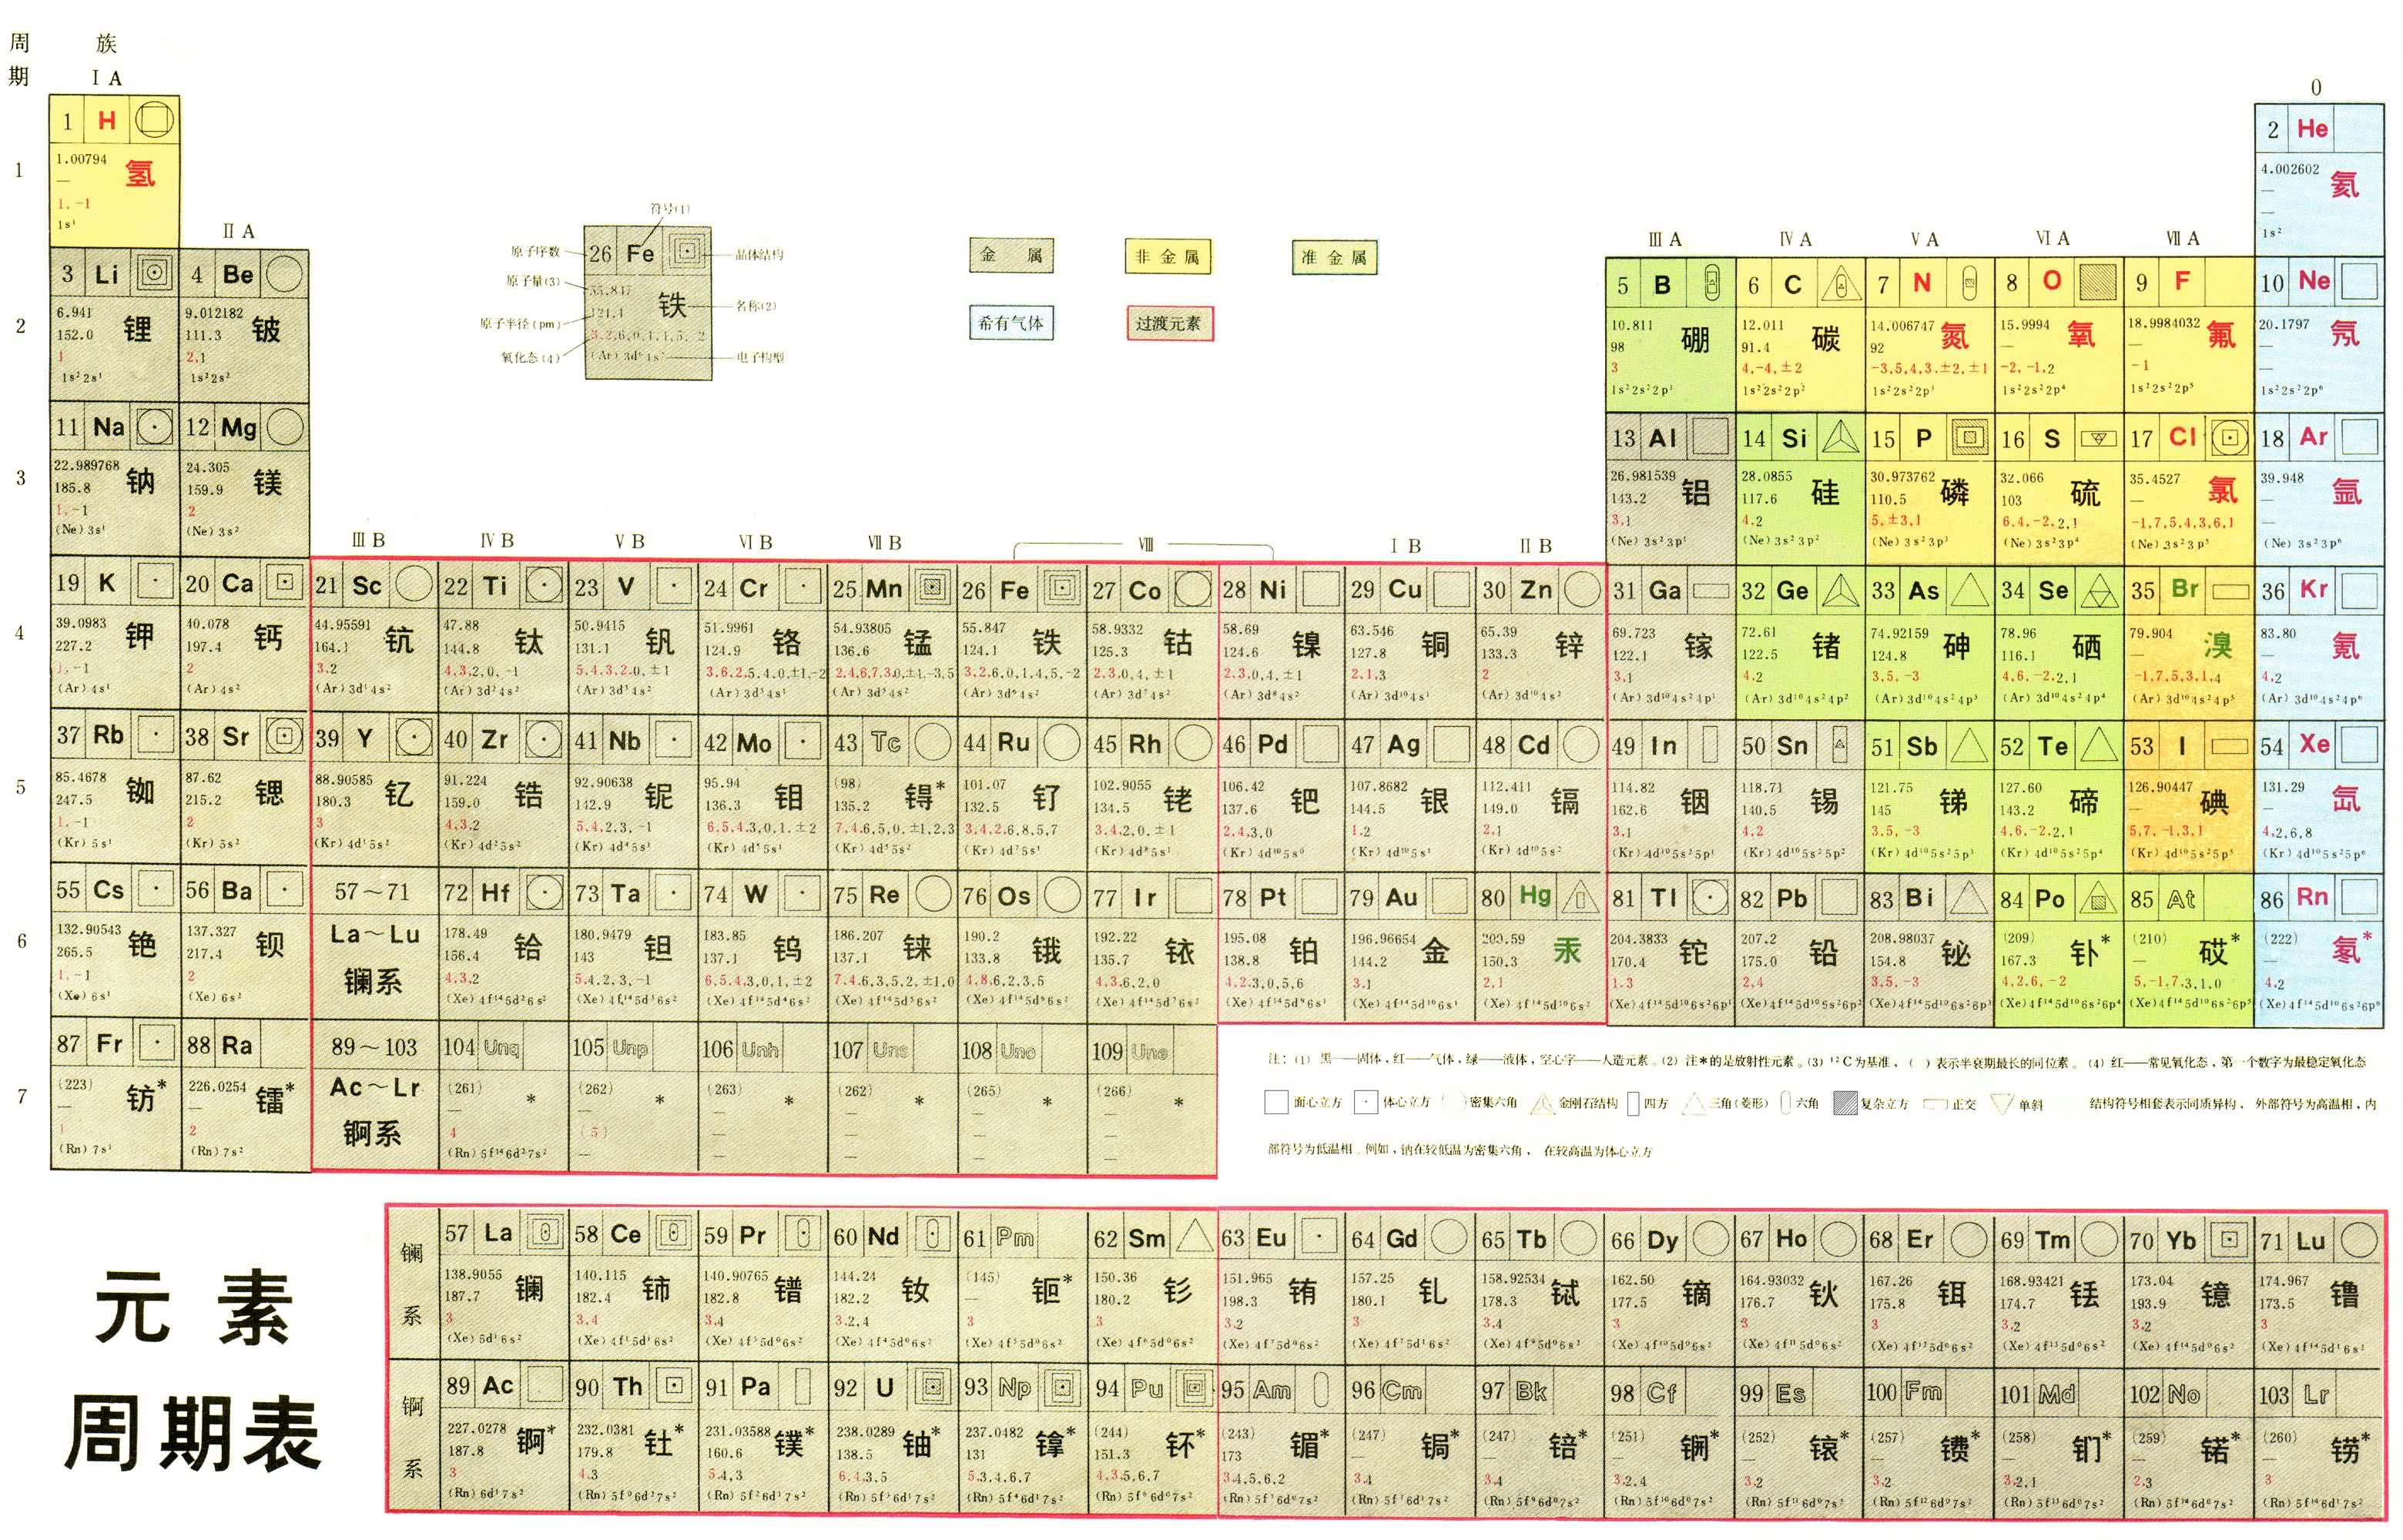 Periodic table of the elements in chinese simplified language klikni pro porovnn simplified a traditional big 5 klikni pro traditional big 5 gamestrikefo Image collections